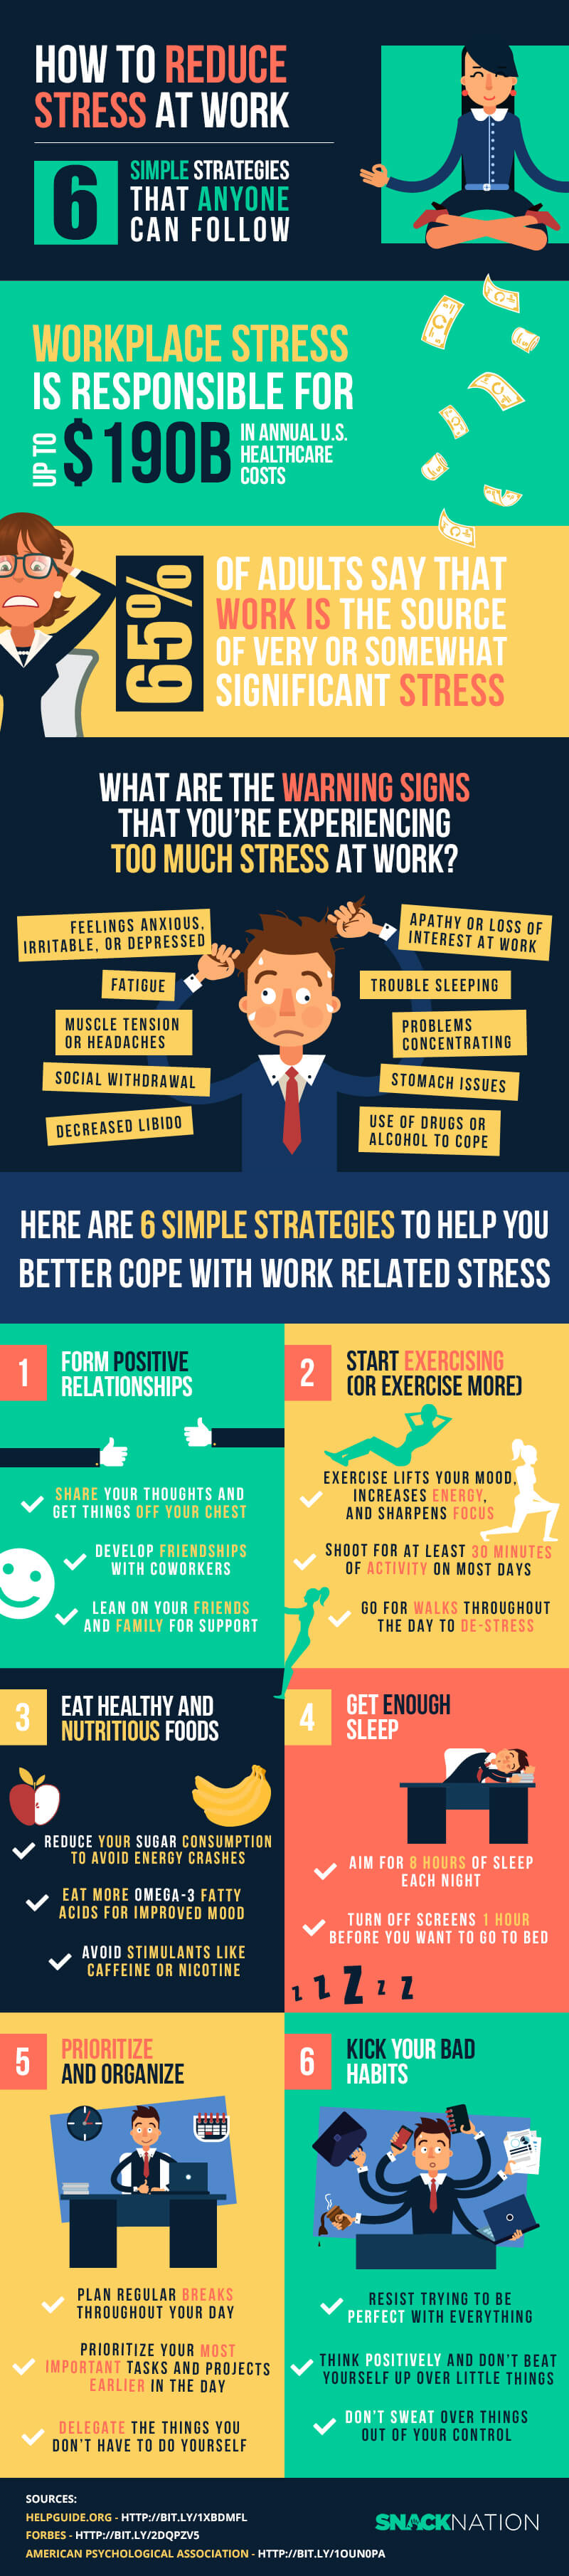 how to reduce incidents at work